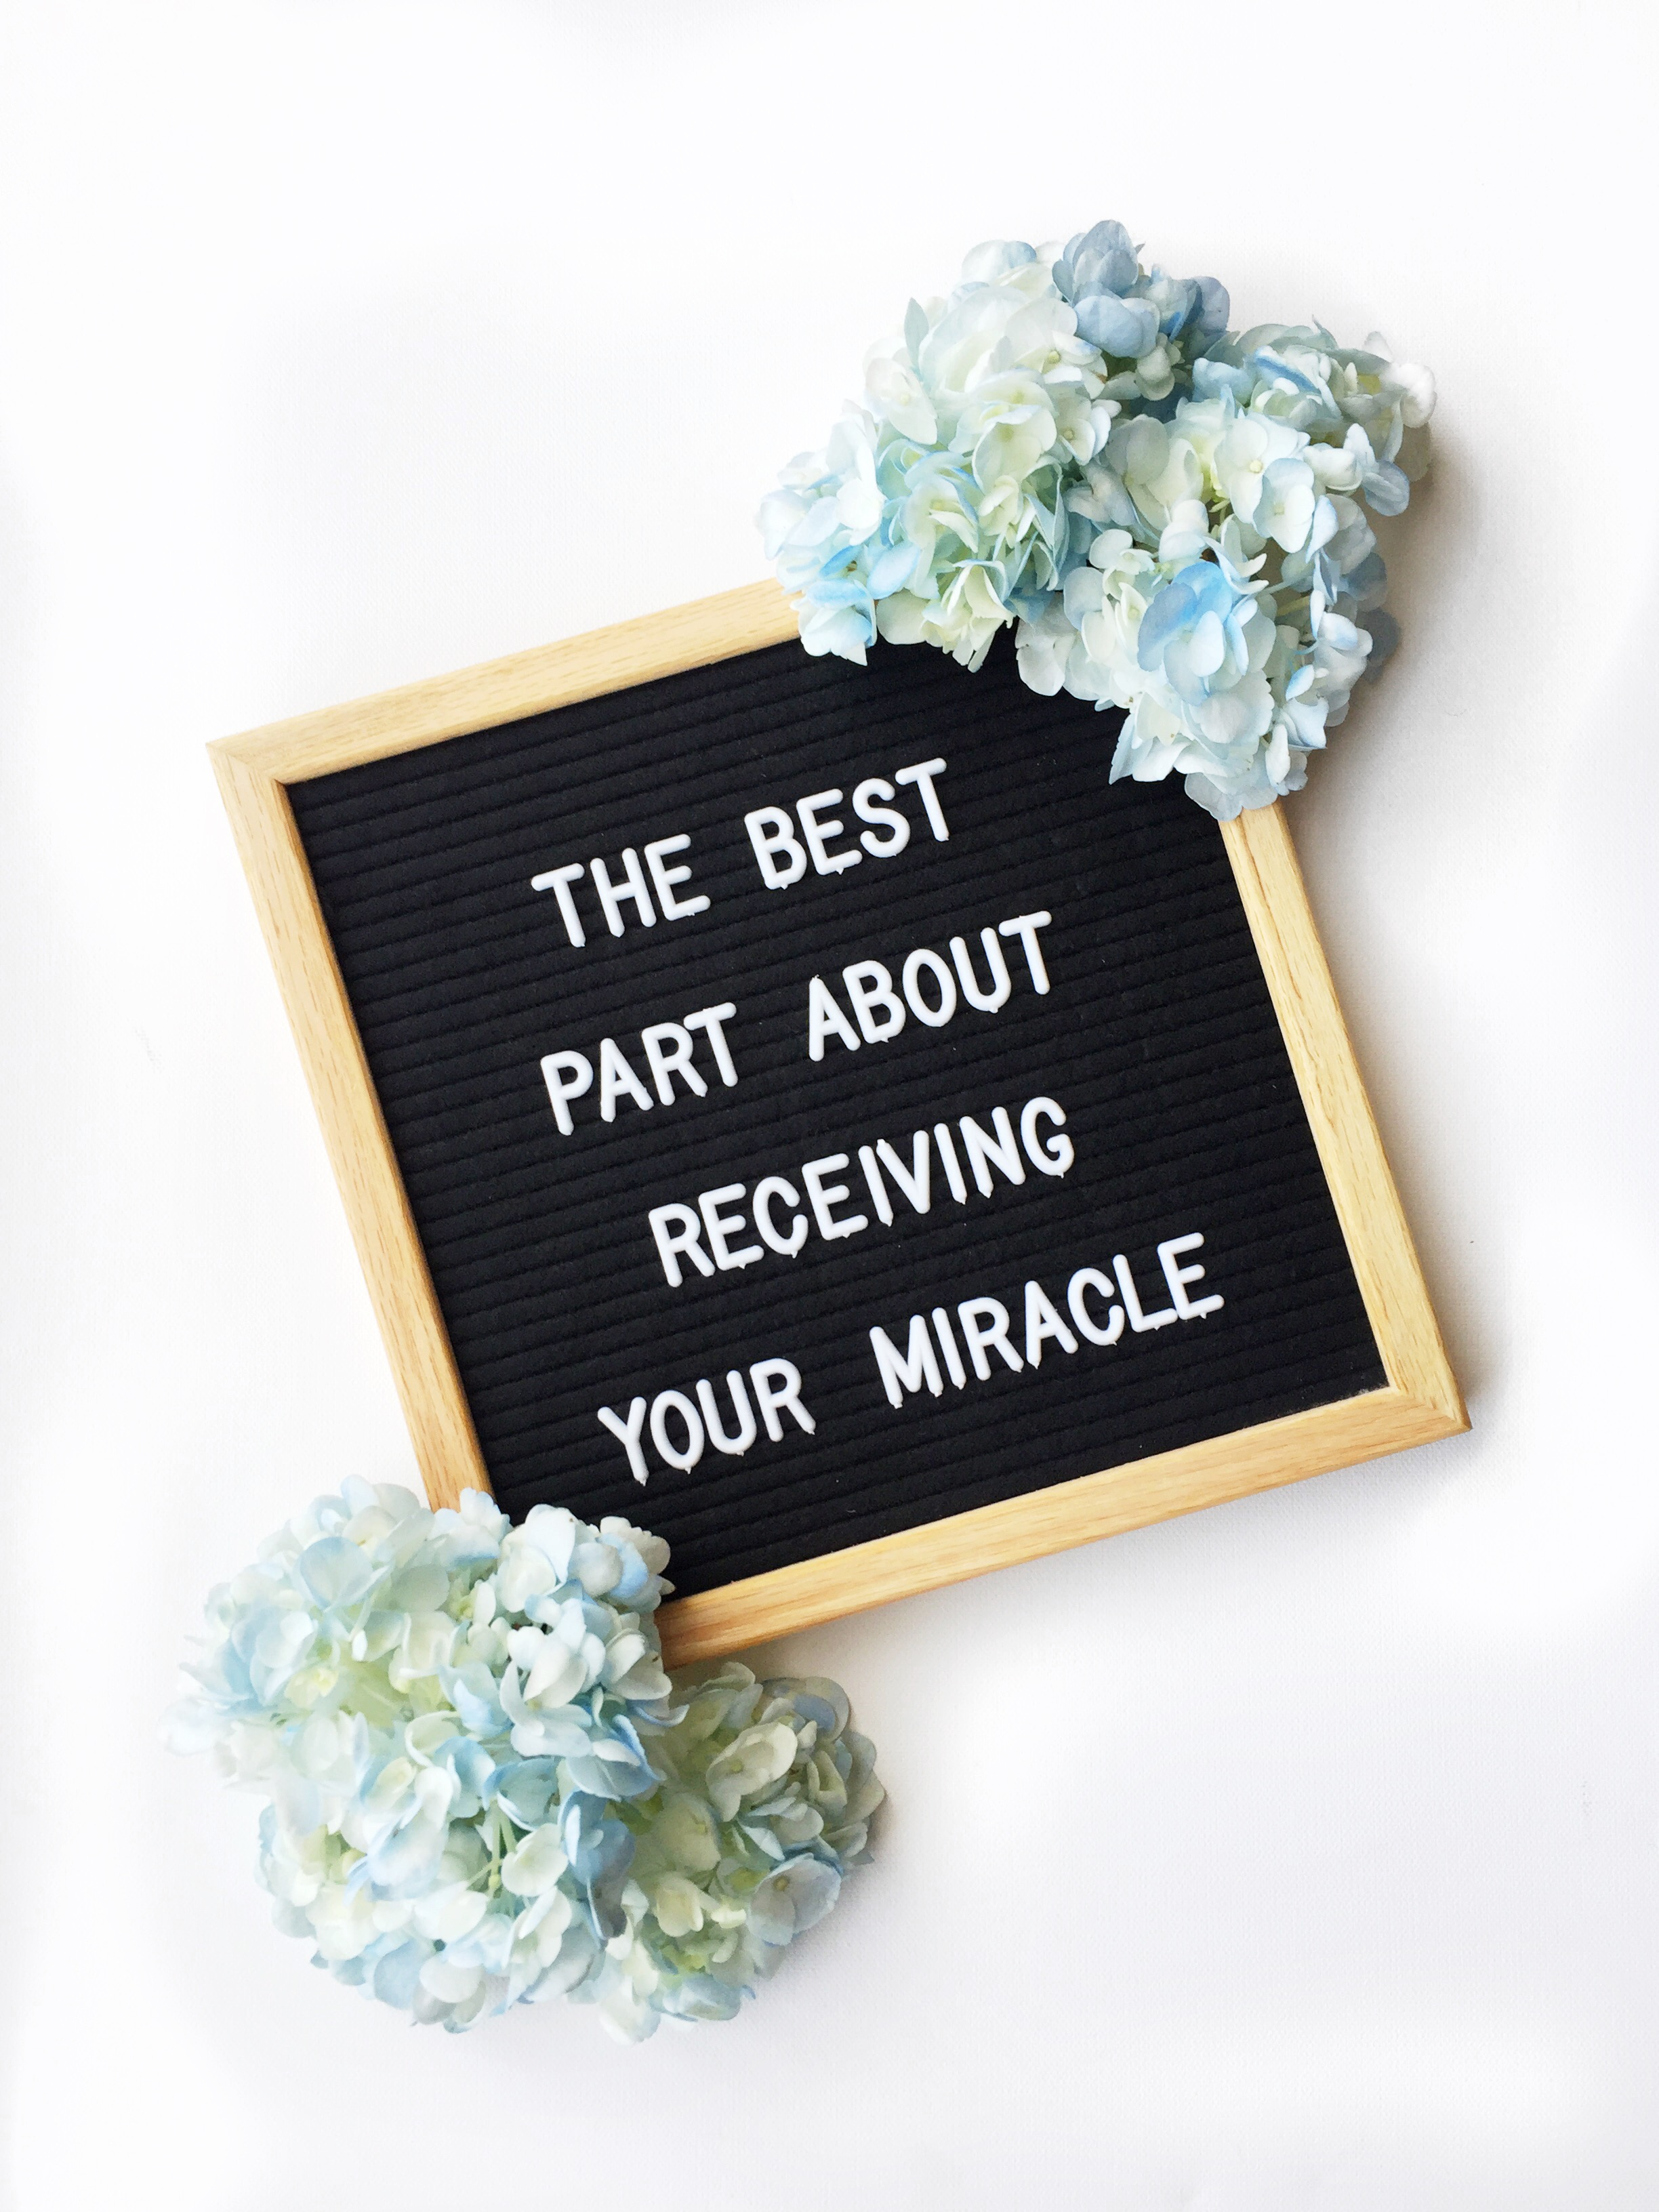 The Best Part About Receiving Your Miracle